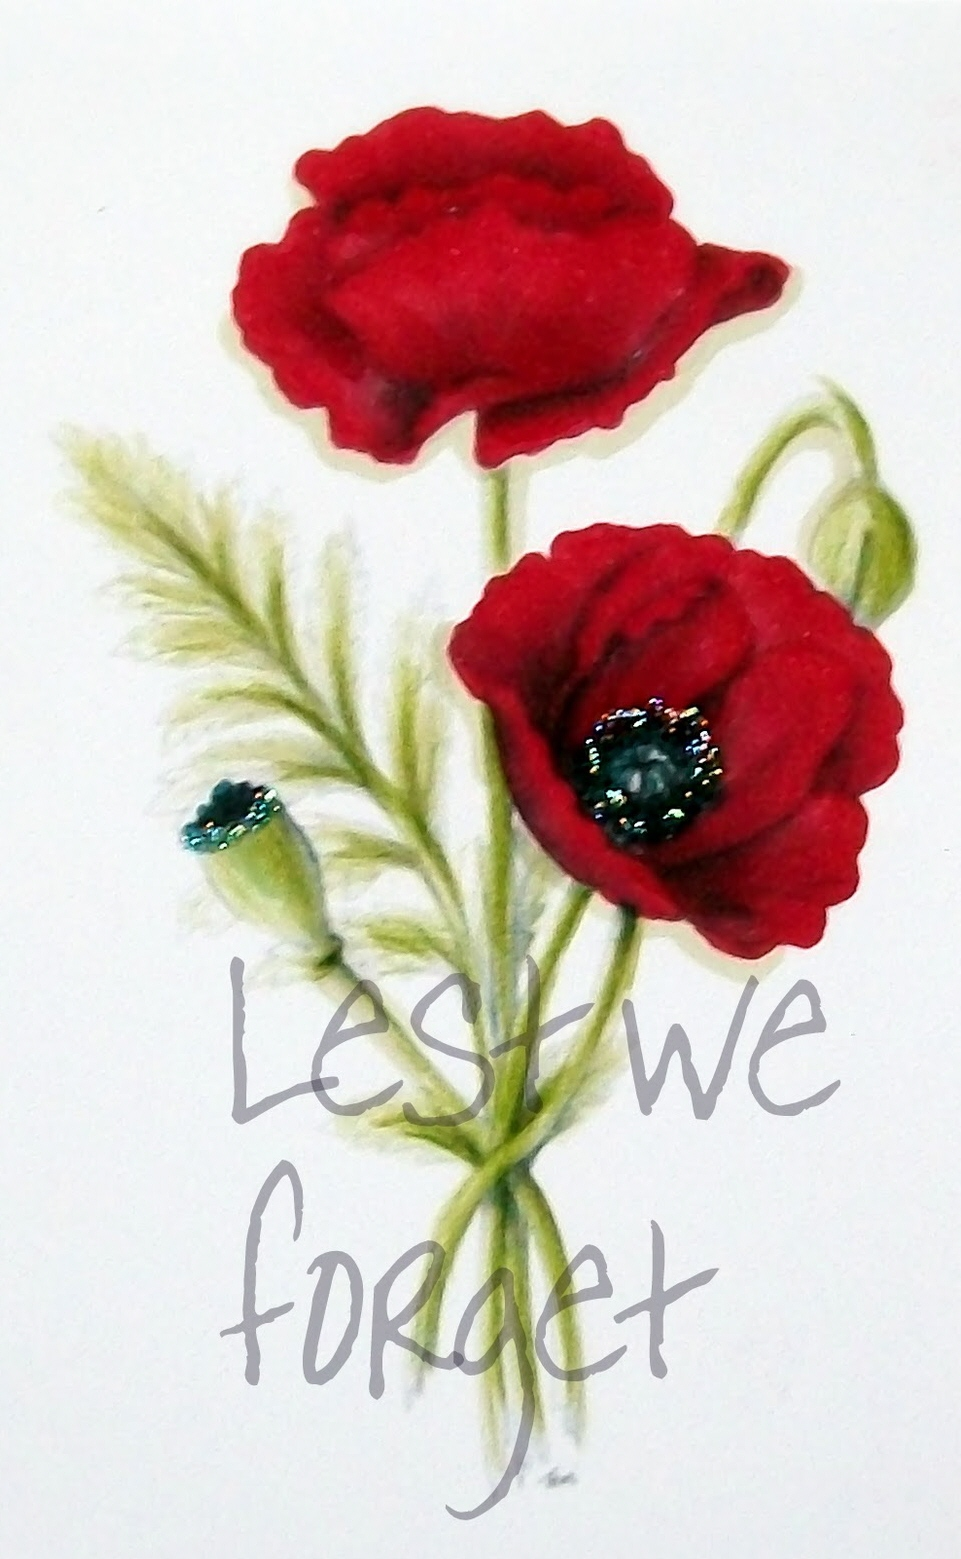 Lest We Forget Poppy Tattoo Designs